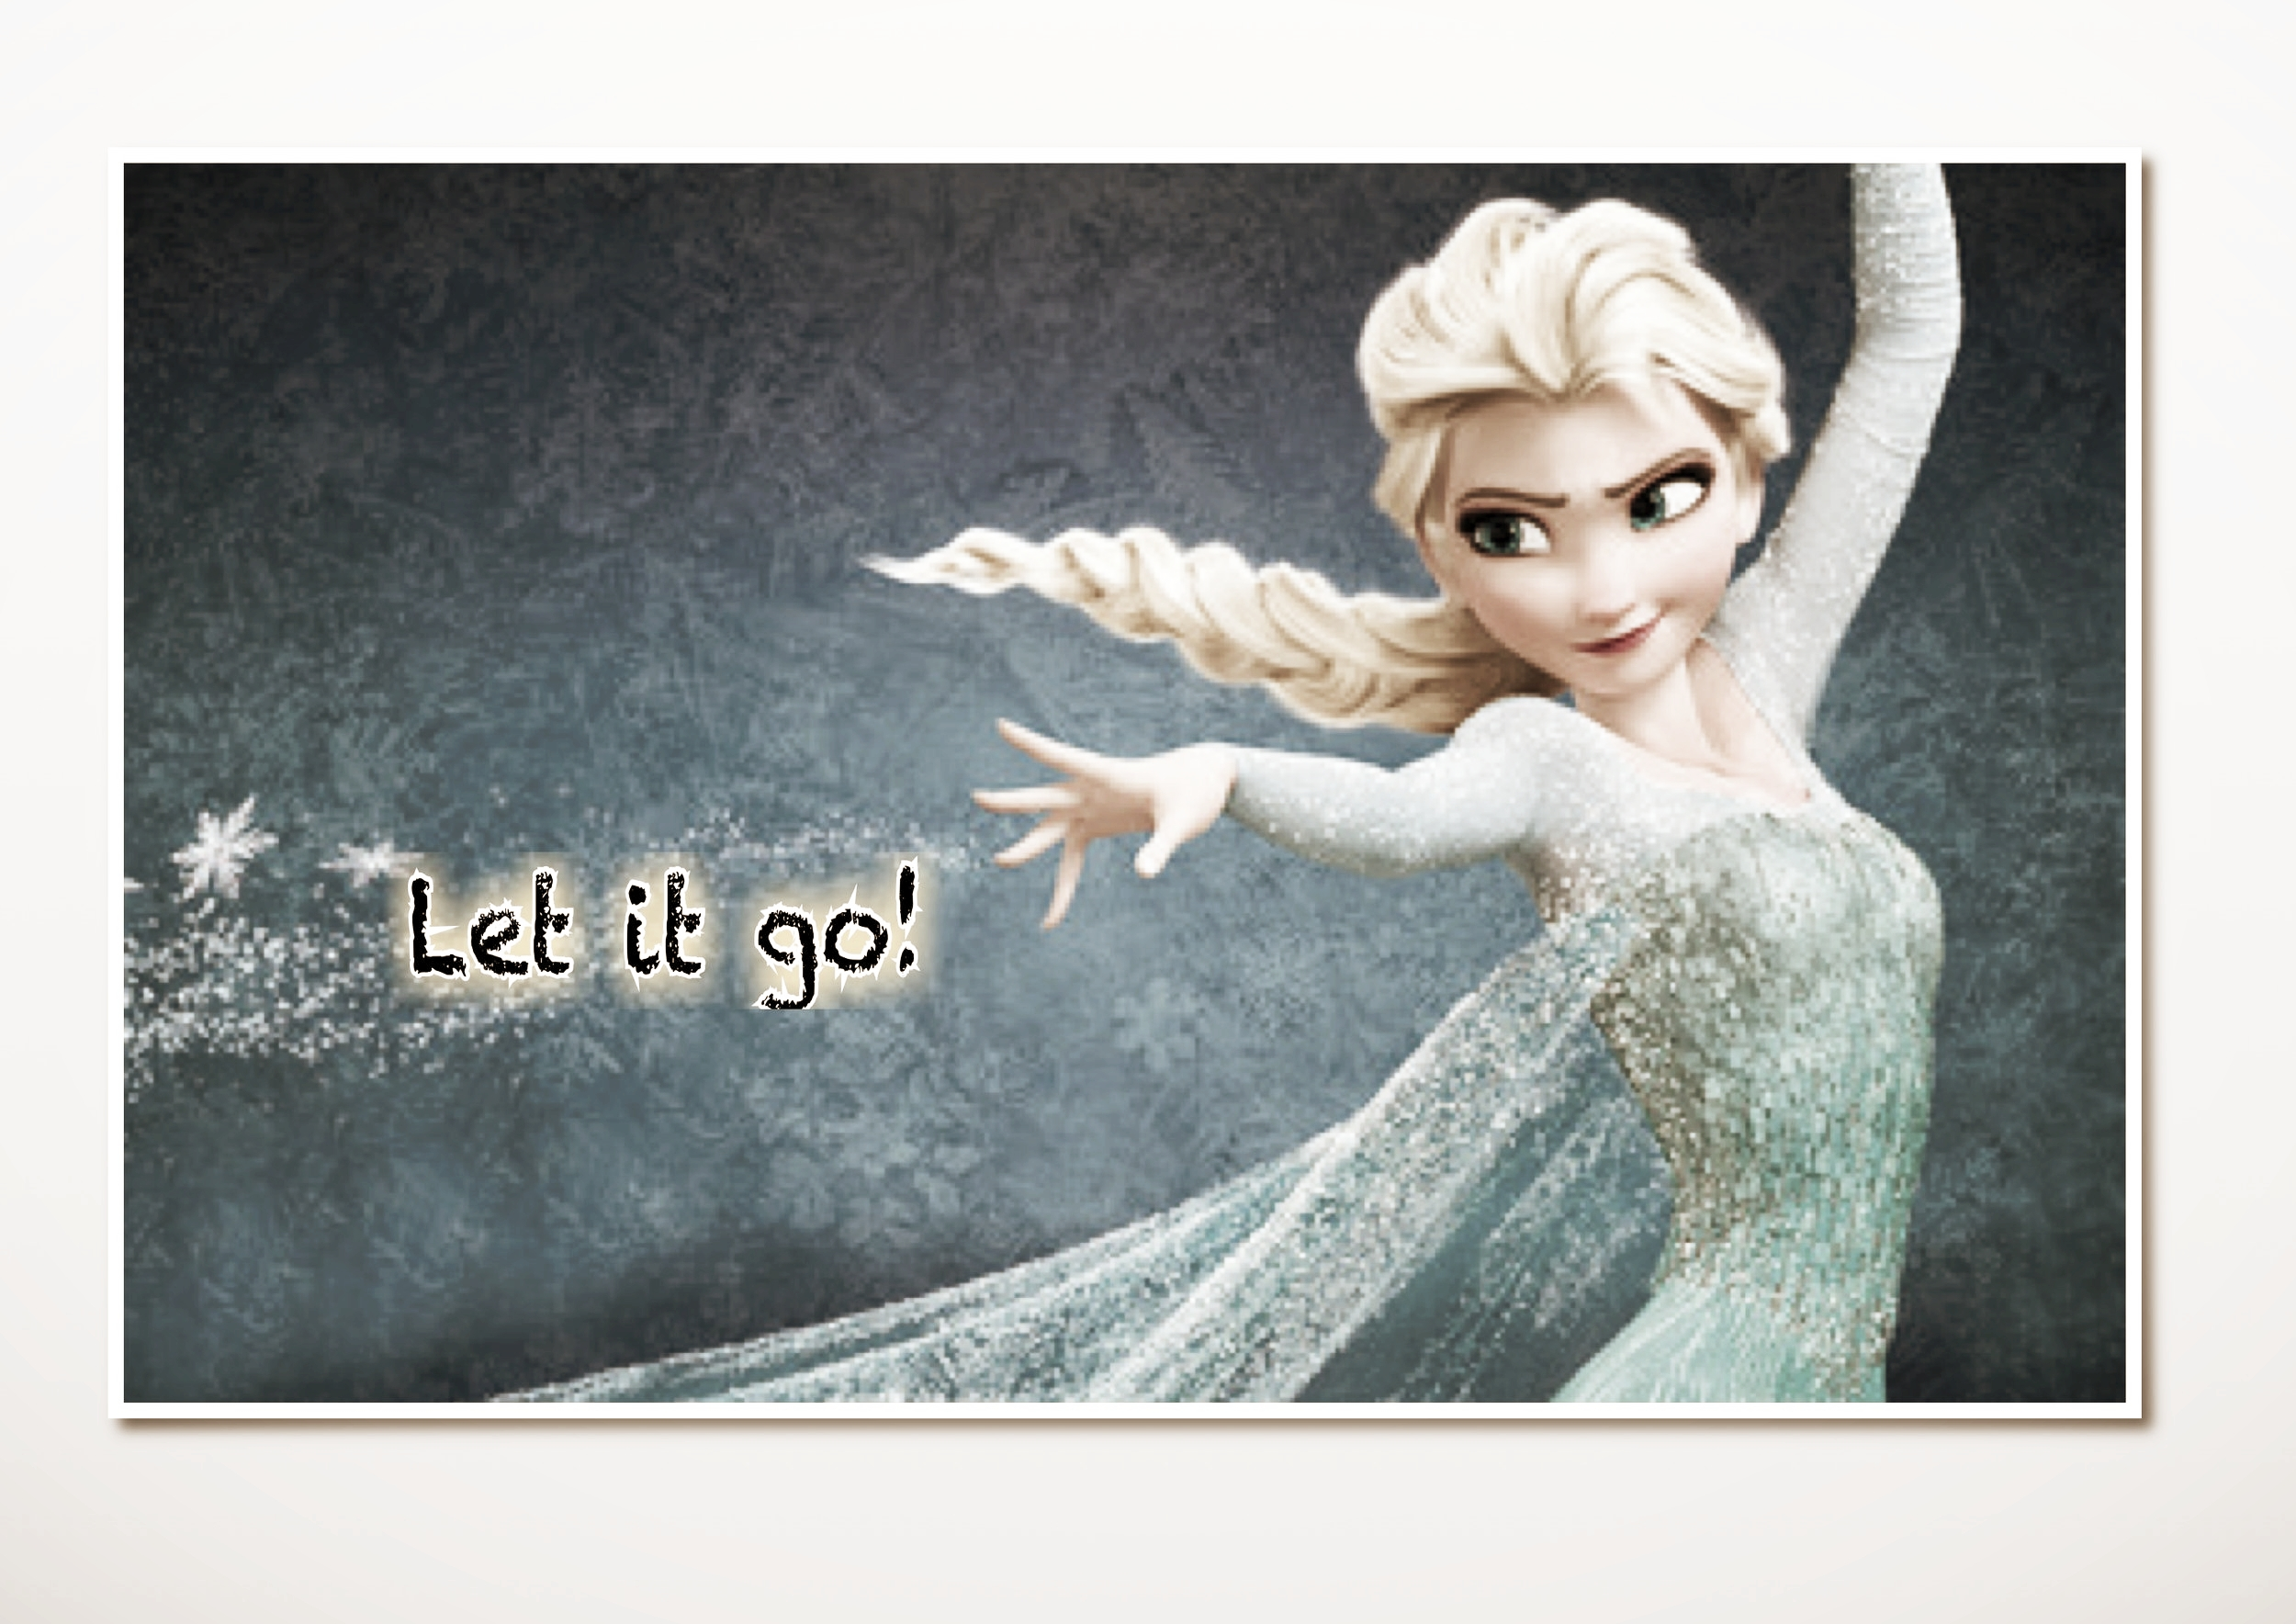 the past is in the past ... let it go !!!  *image from random websearch